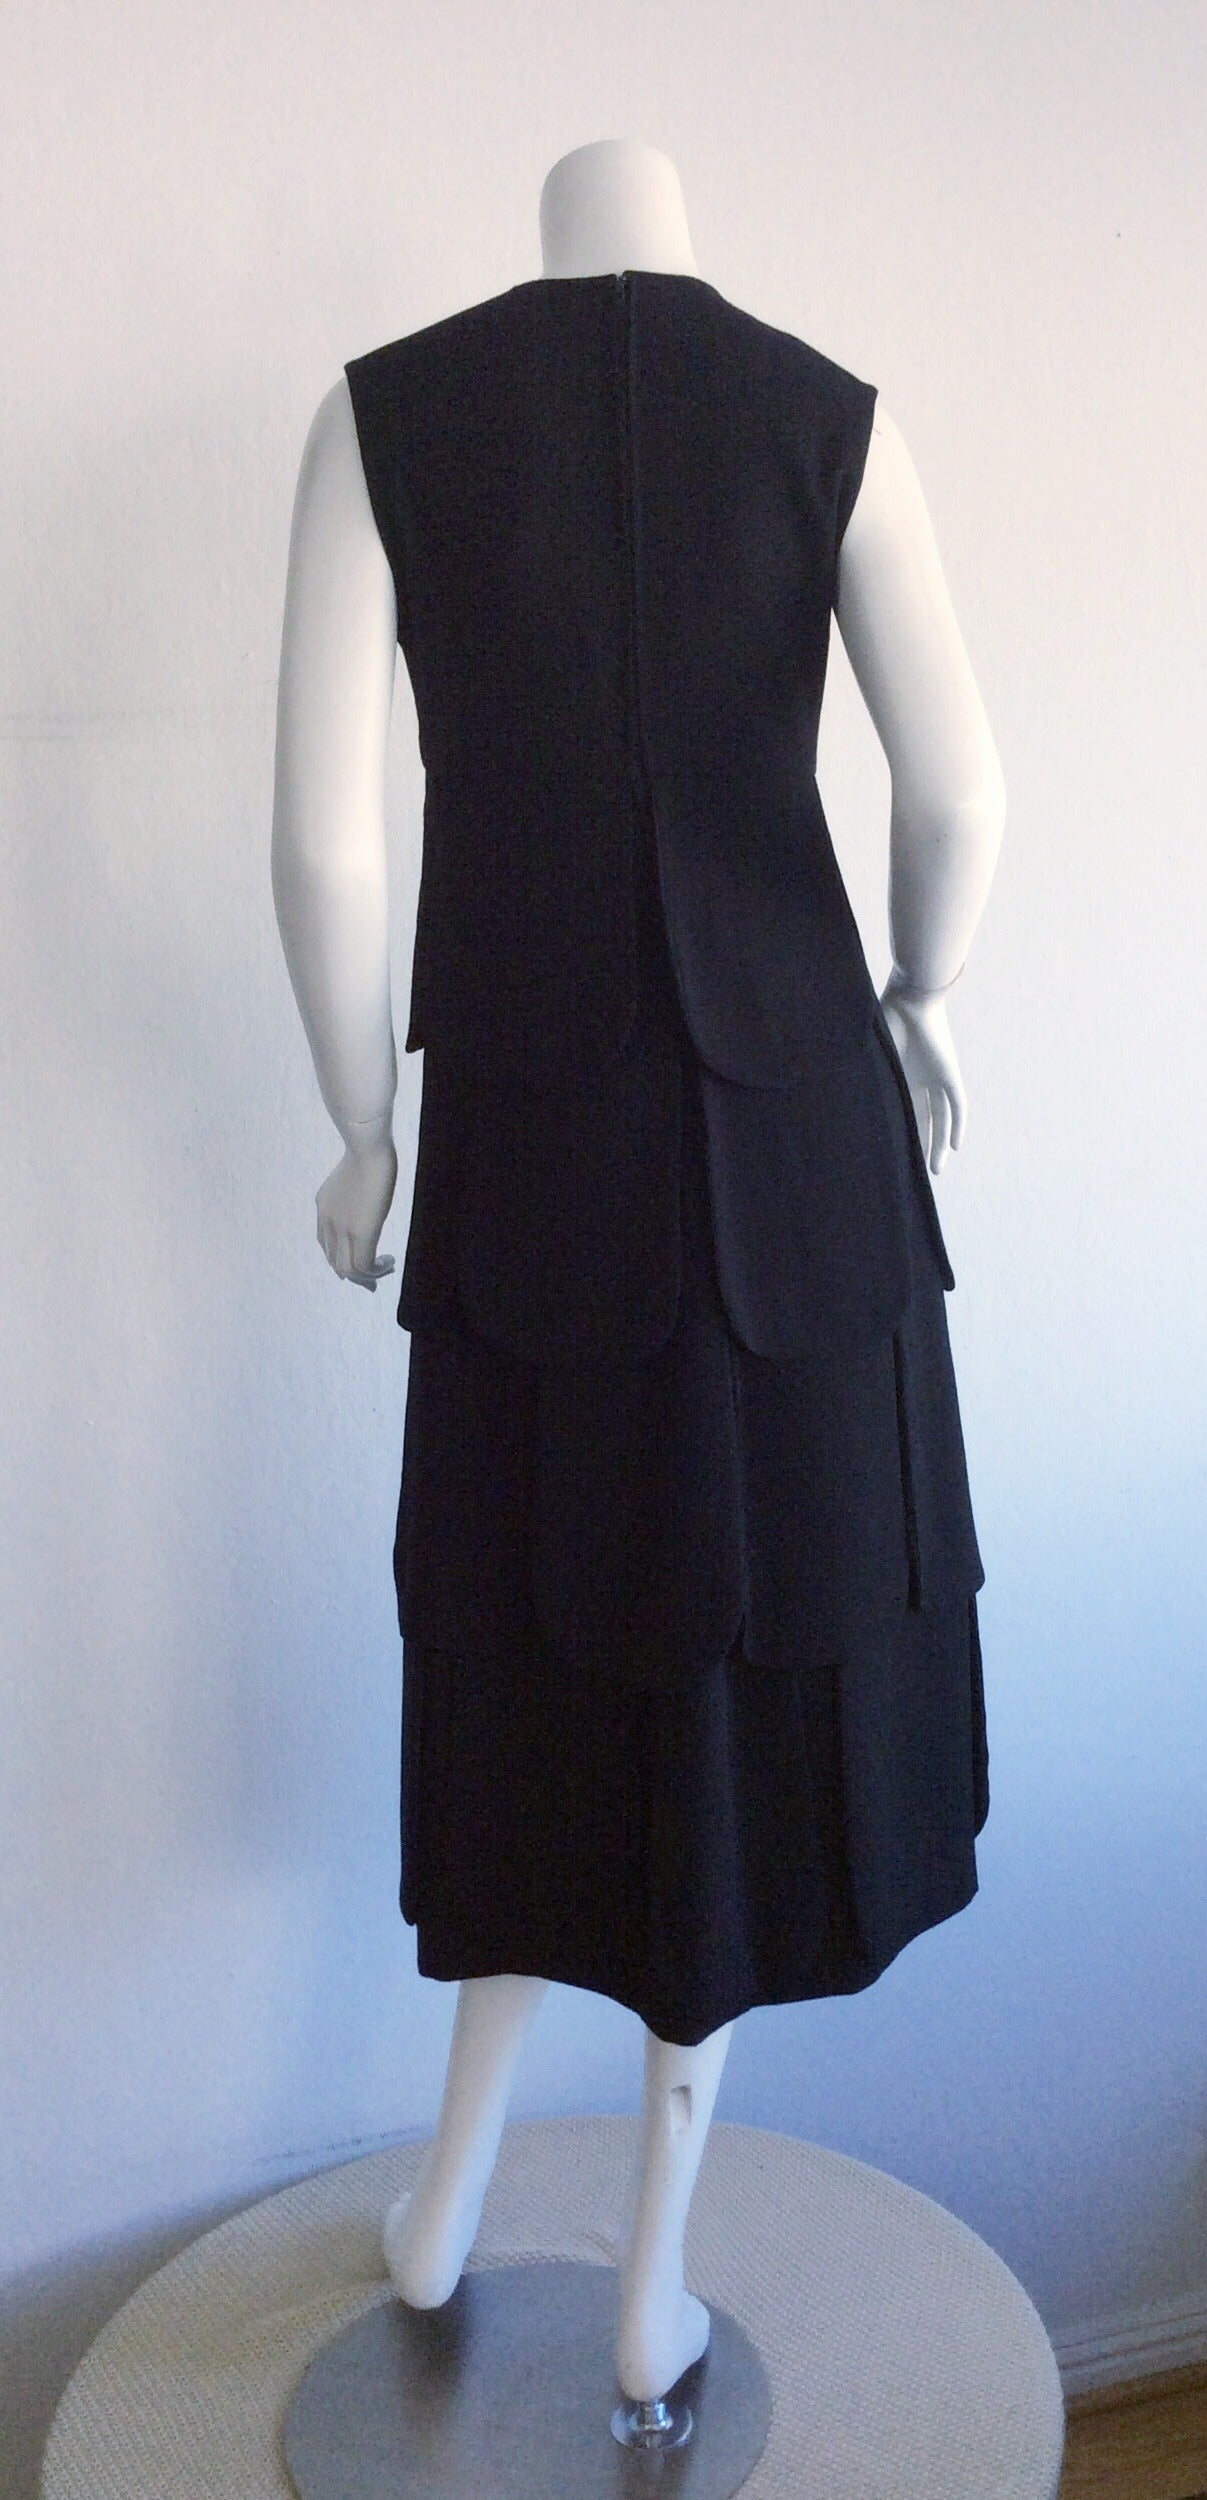 Iconic 1960s 60s Vintage Pierre Cardin Black Wool ' Car Wash ' Space Age Dress For Sale 1